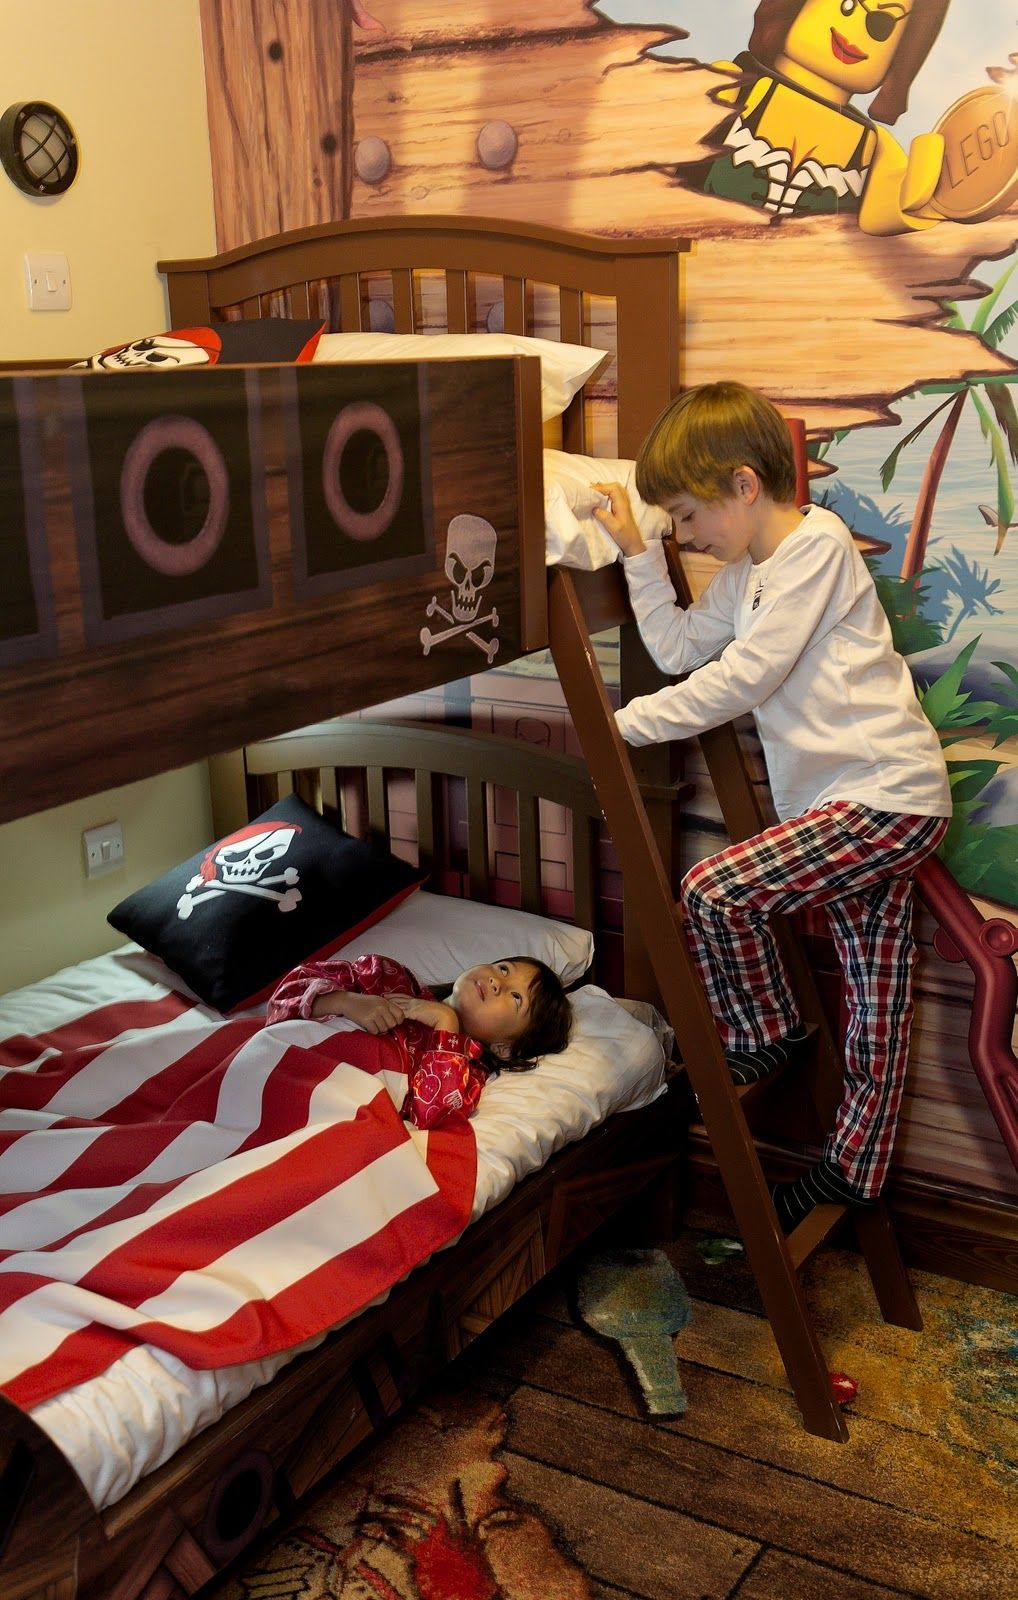 Pirate Themed Bedroom Furniture Pirate Bunk Bed I Have A Strong Feeling Jake Will Want To Have A